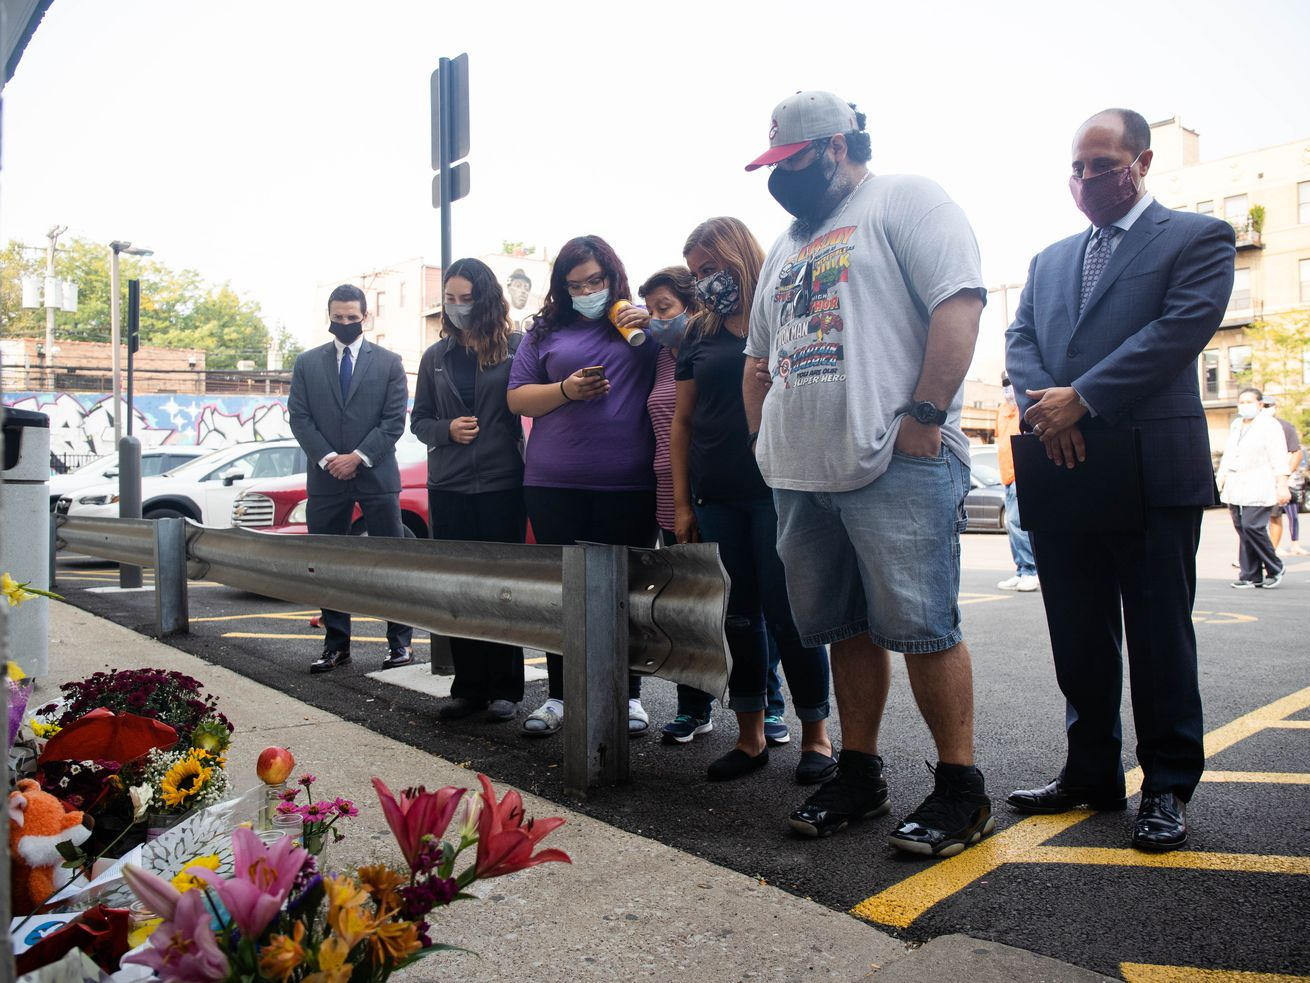 Israel Alvarado III, second from right, fiance of Olga Maria Calderon, and family members gathered Wednesday at a memorial for Calderon outside Walgreens at 1372 N. Milwaukee Ave. in Wicker Park.